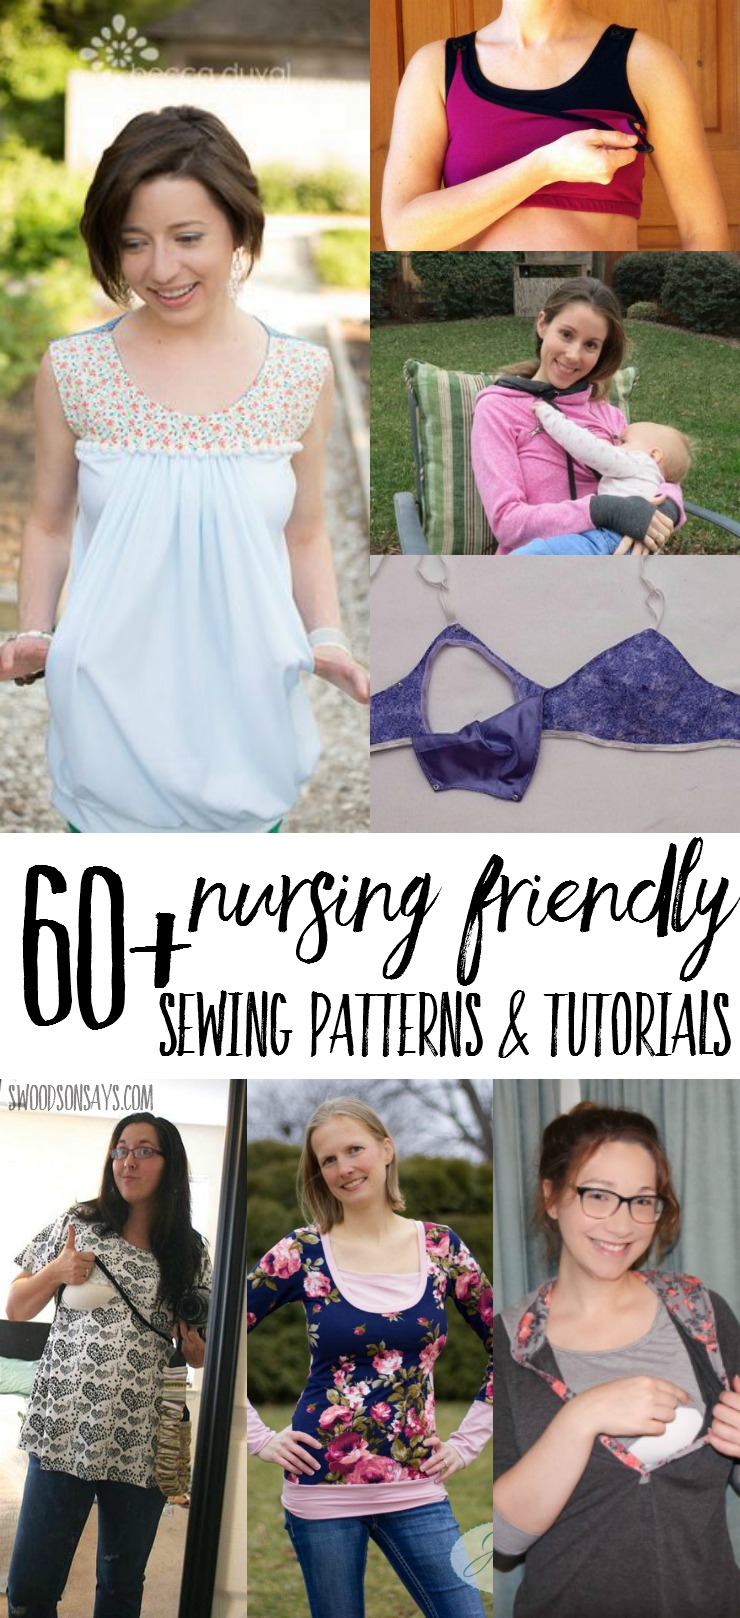 Looking for nursing sewing patterns? Here's a list of over 60 PDF sewing patterns that are breastfeeding friendly and nursing friendly sewing tutorials! Lots of these cross over to be maternity sewing patterns too.